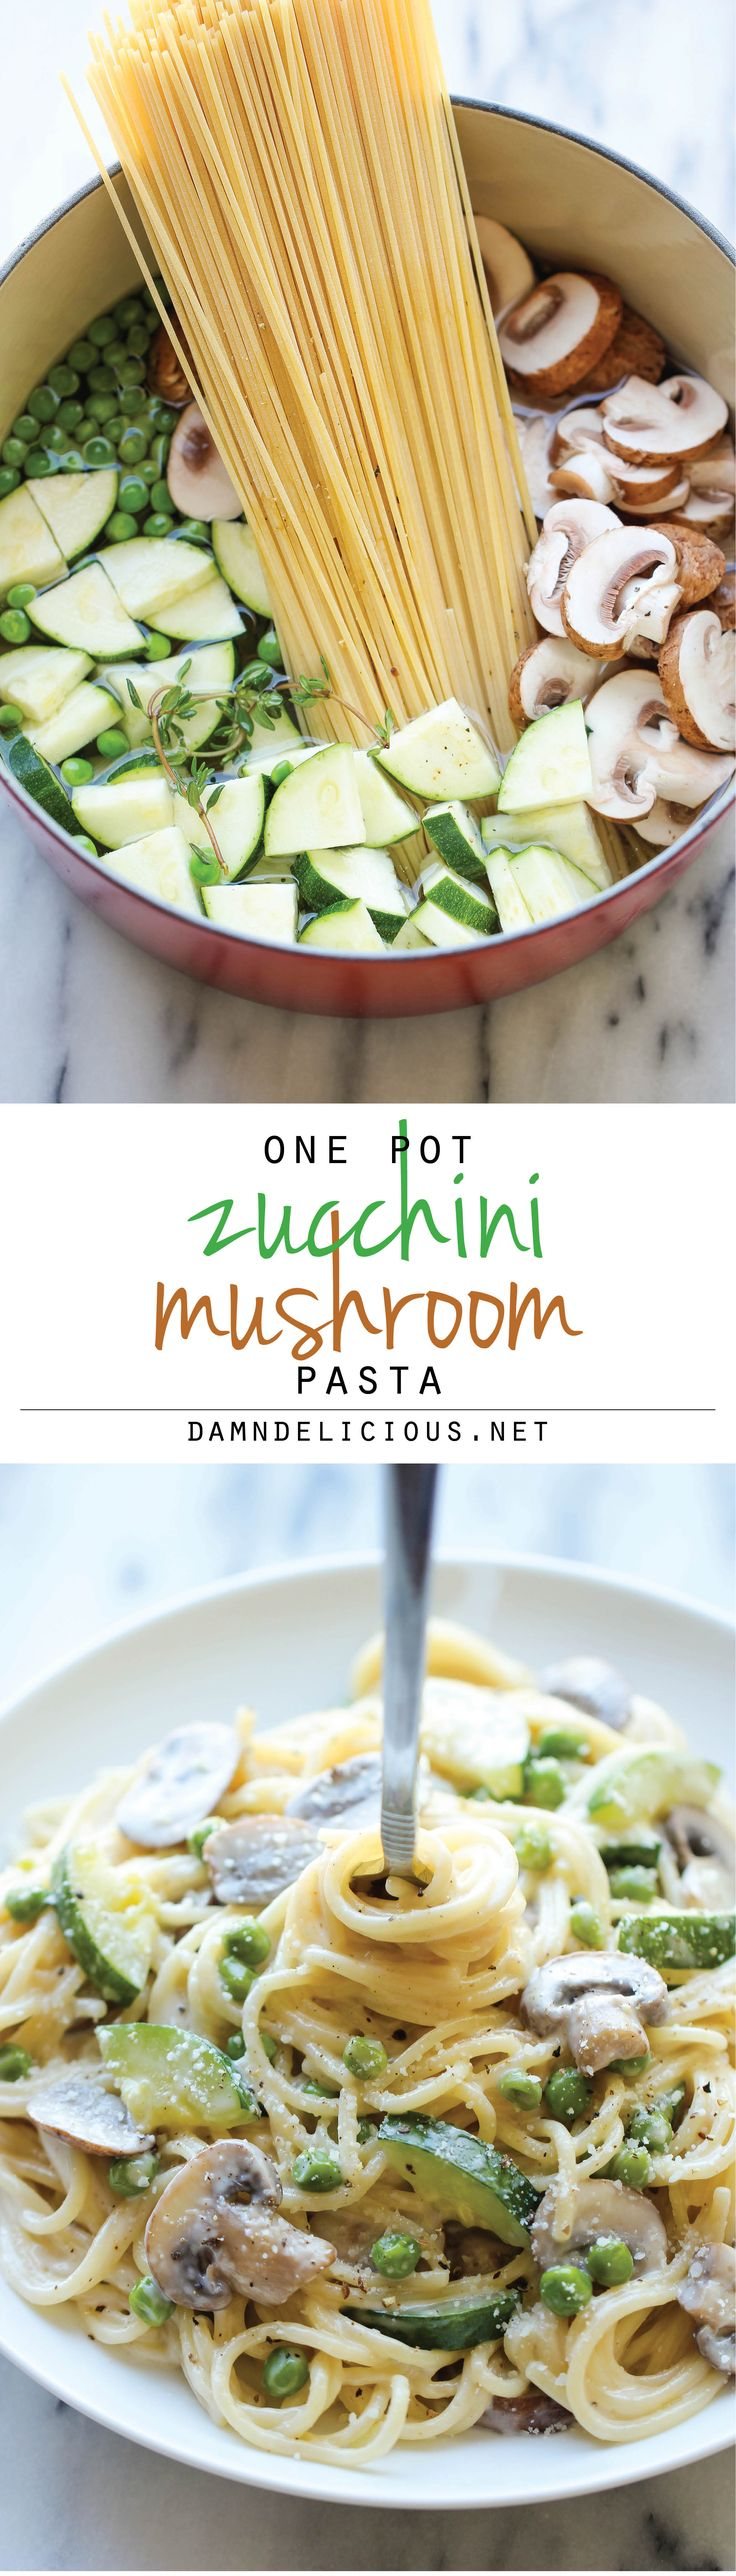 One Pot Zucchini Mushroom Pasta - swap the heavy cream for quark or natural yoghurt and use the parmesan as HEA and it's free on SW